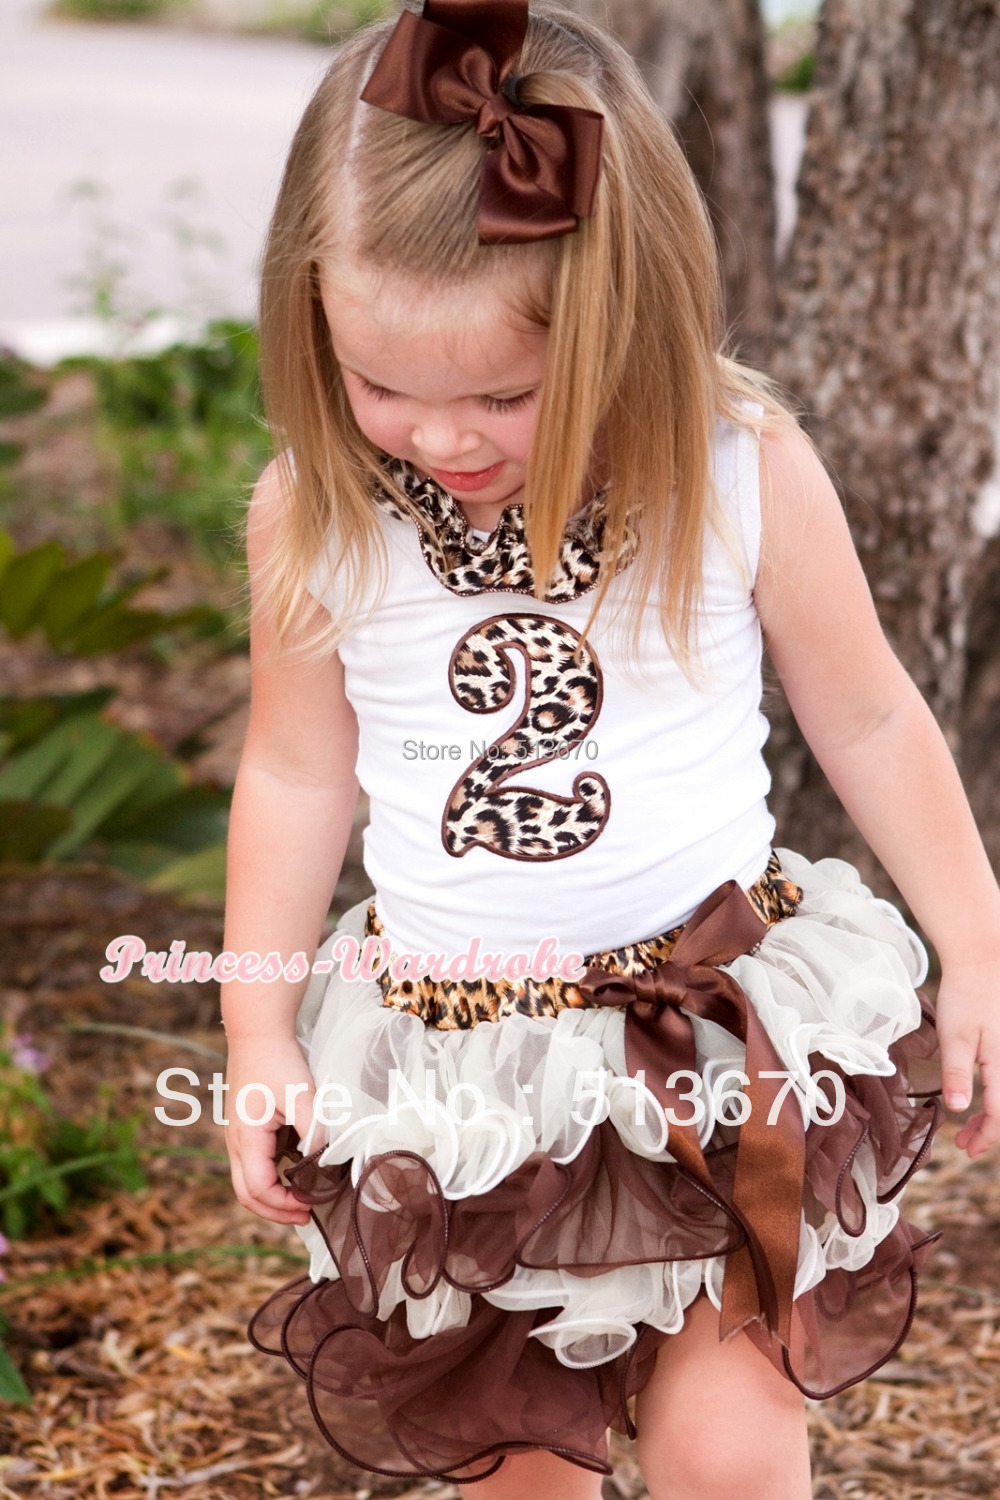 White Top Leopard Satin Lacing 2nd Leopard Birthday Number Brown Bow Leopard Waist Cream White Brown Petal Pettiskirt MAMG698 baby golden brown pettiskirt golden ruffle brown bow white top shirt set 3 12m mapsa0289